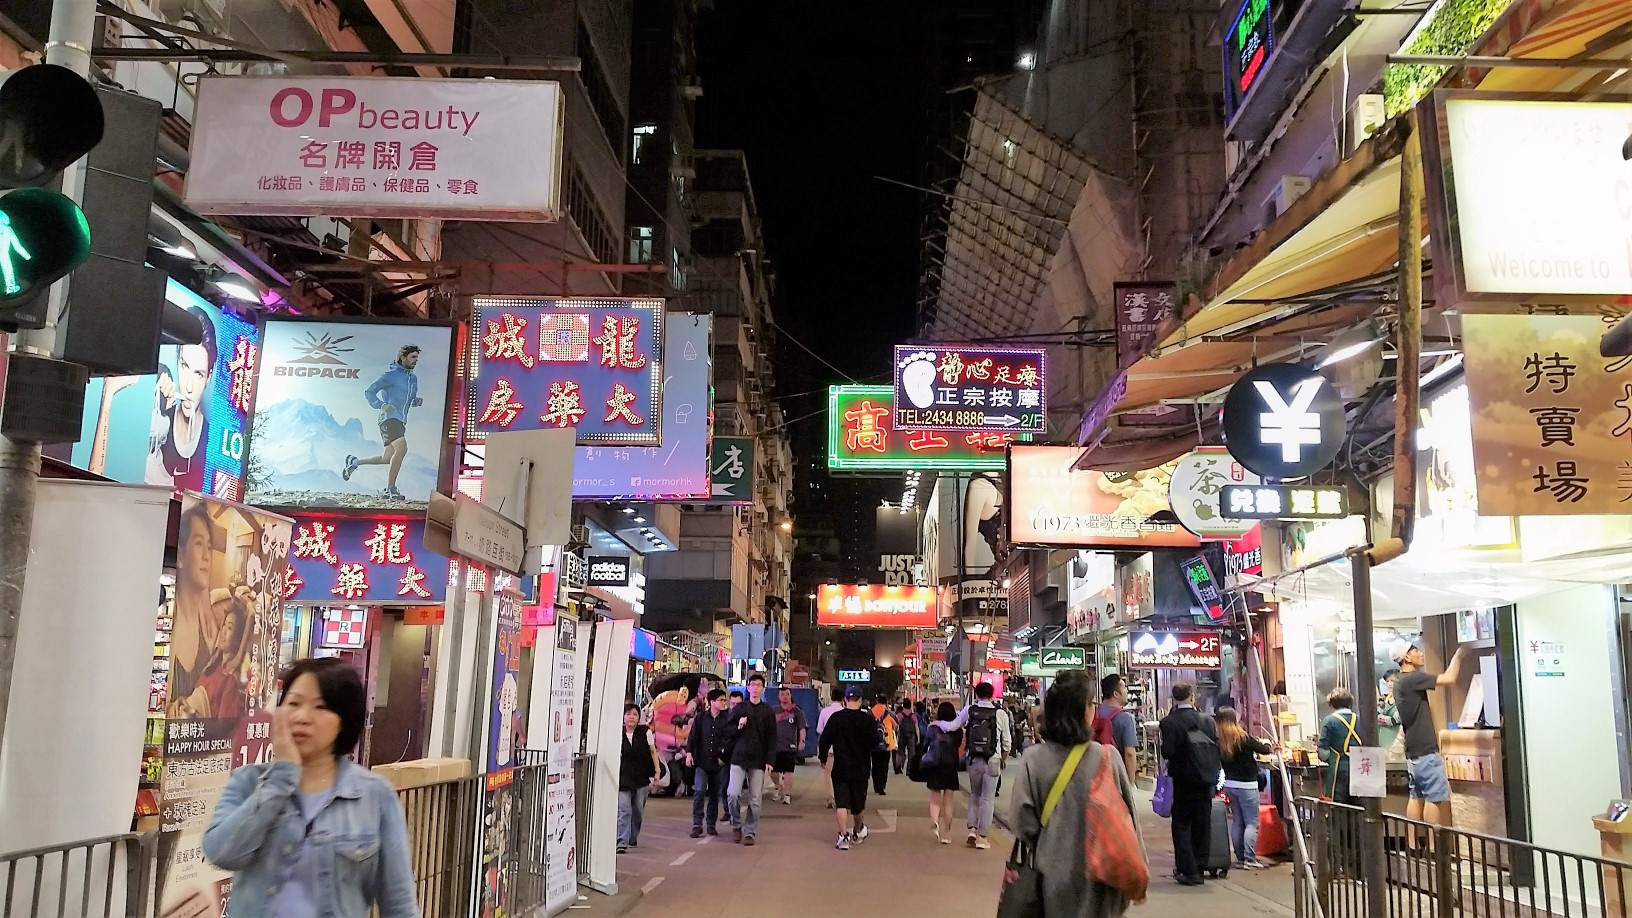 The streets of Mong kok